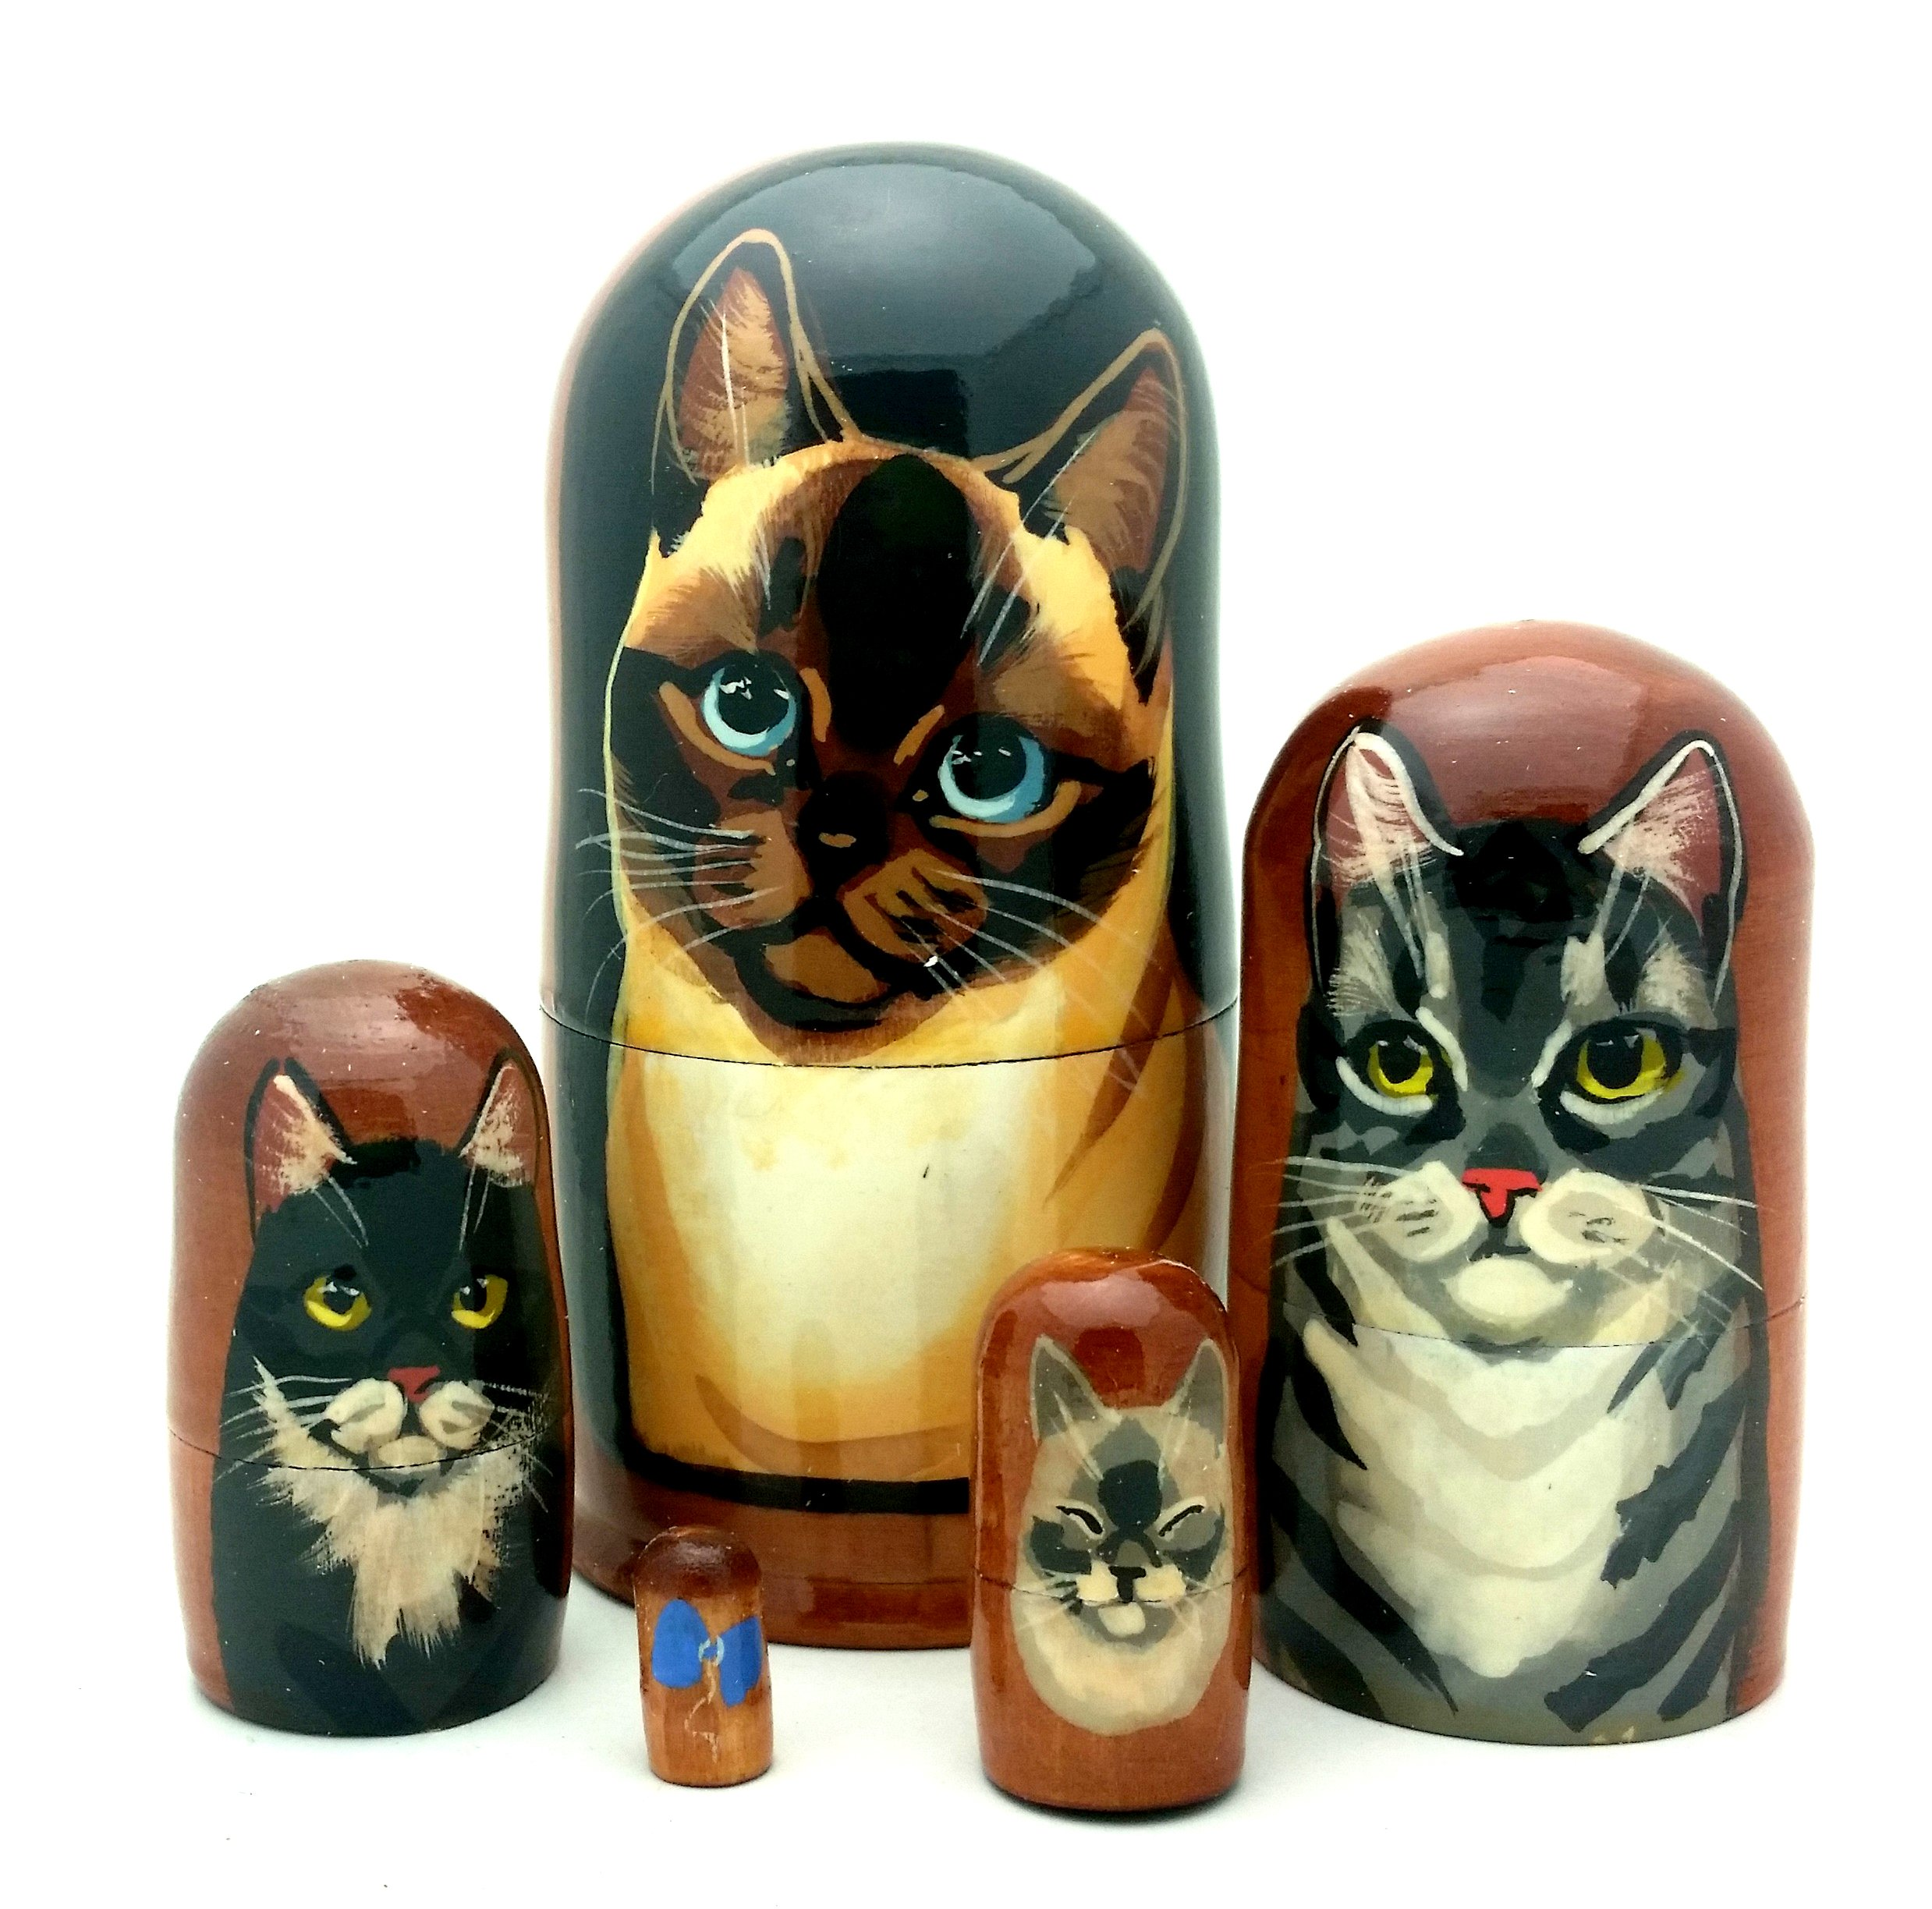 Cat nesting dolls Russian Hand made 5 piece matryoshka Set by BuyRussianGifts